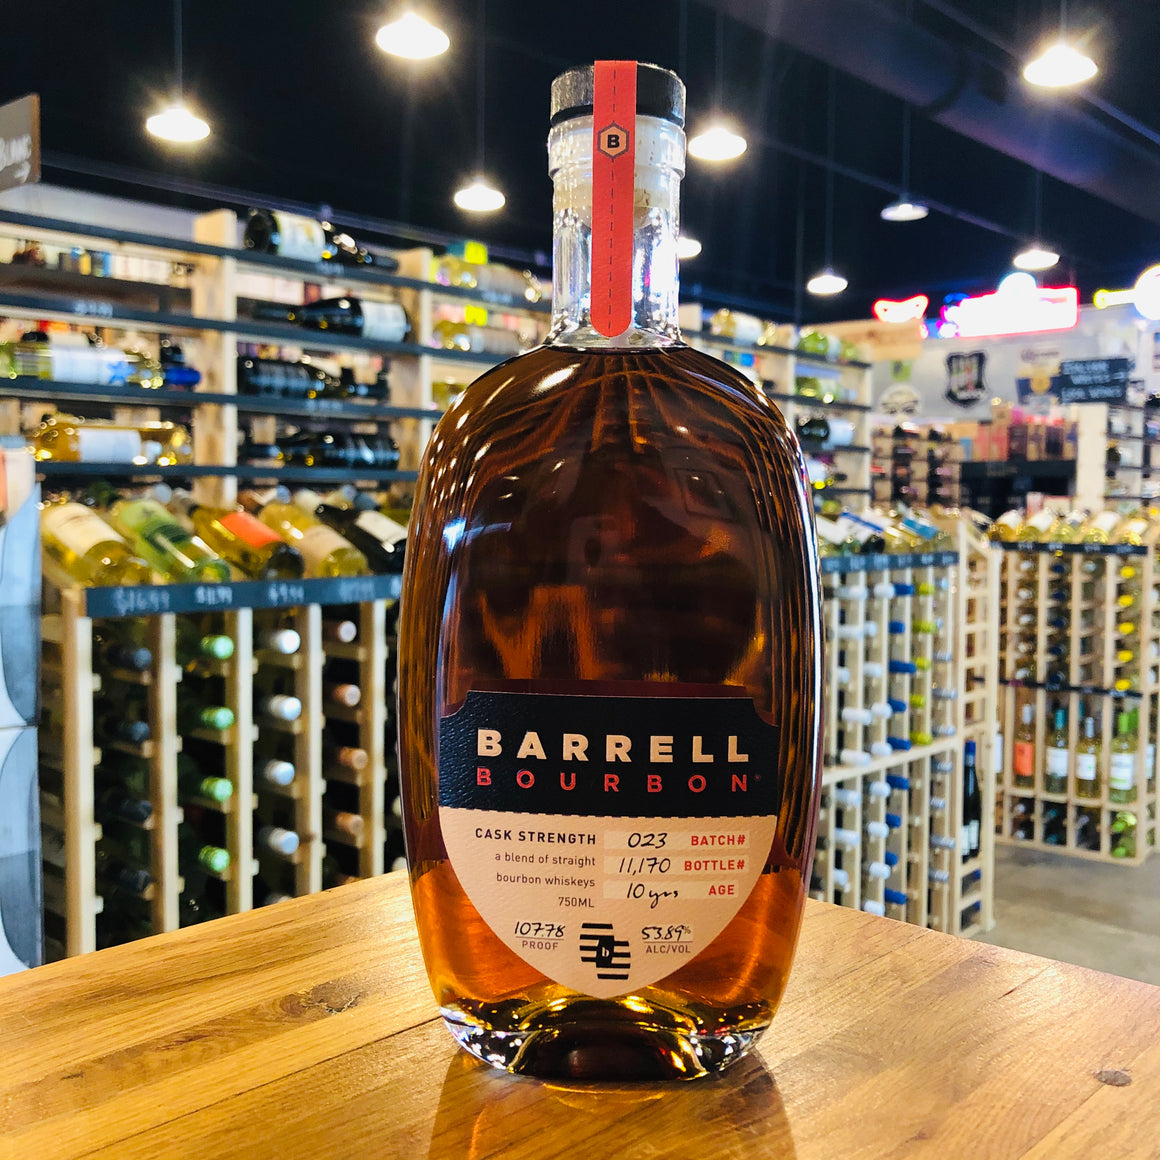 BARRELL BOURBON #023 10 YEAR 750ML